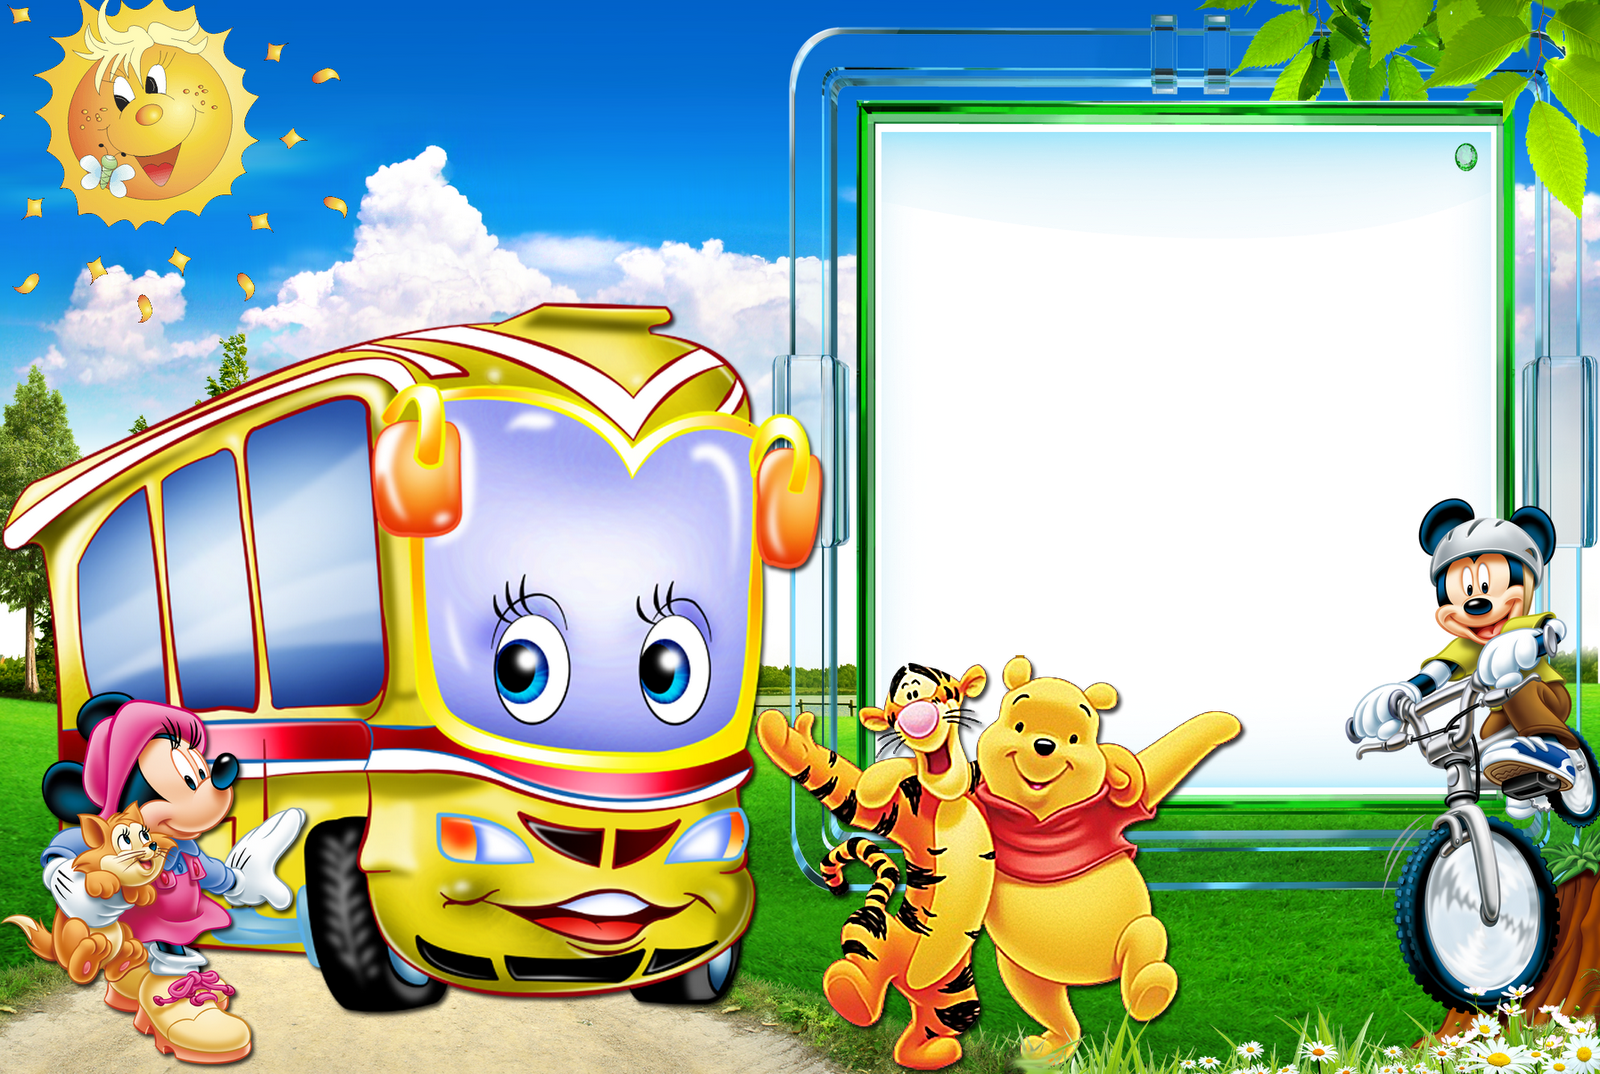 Frames for kids png. Cute frame gallery yopriceville